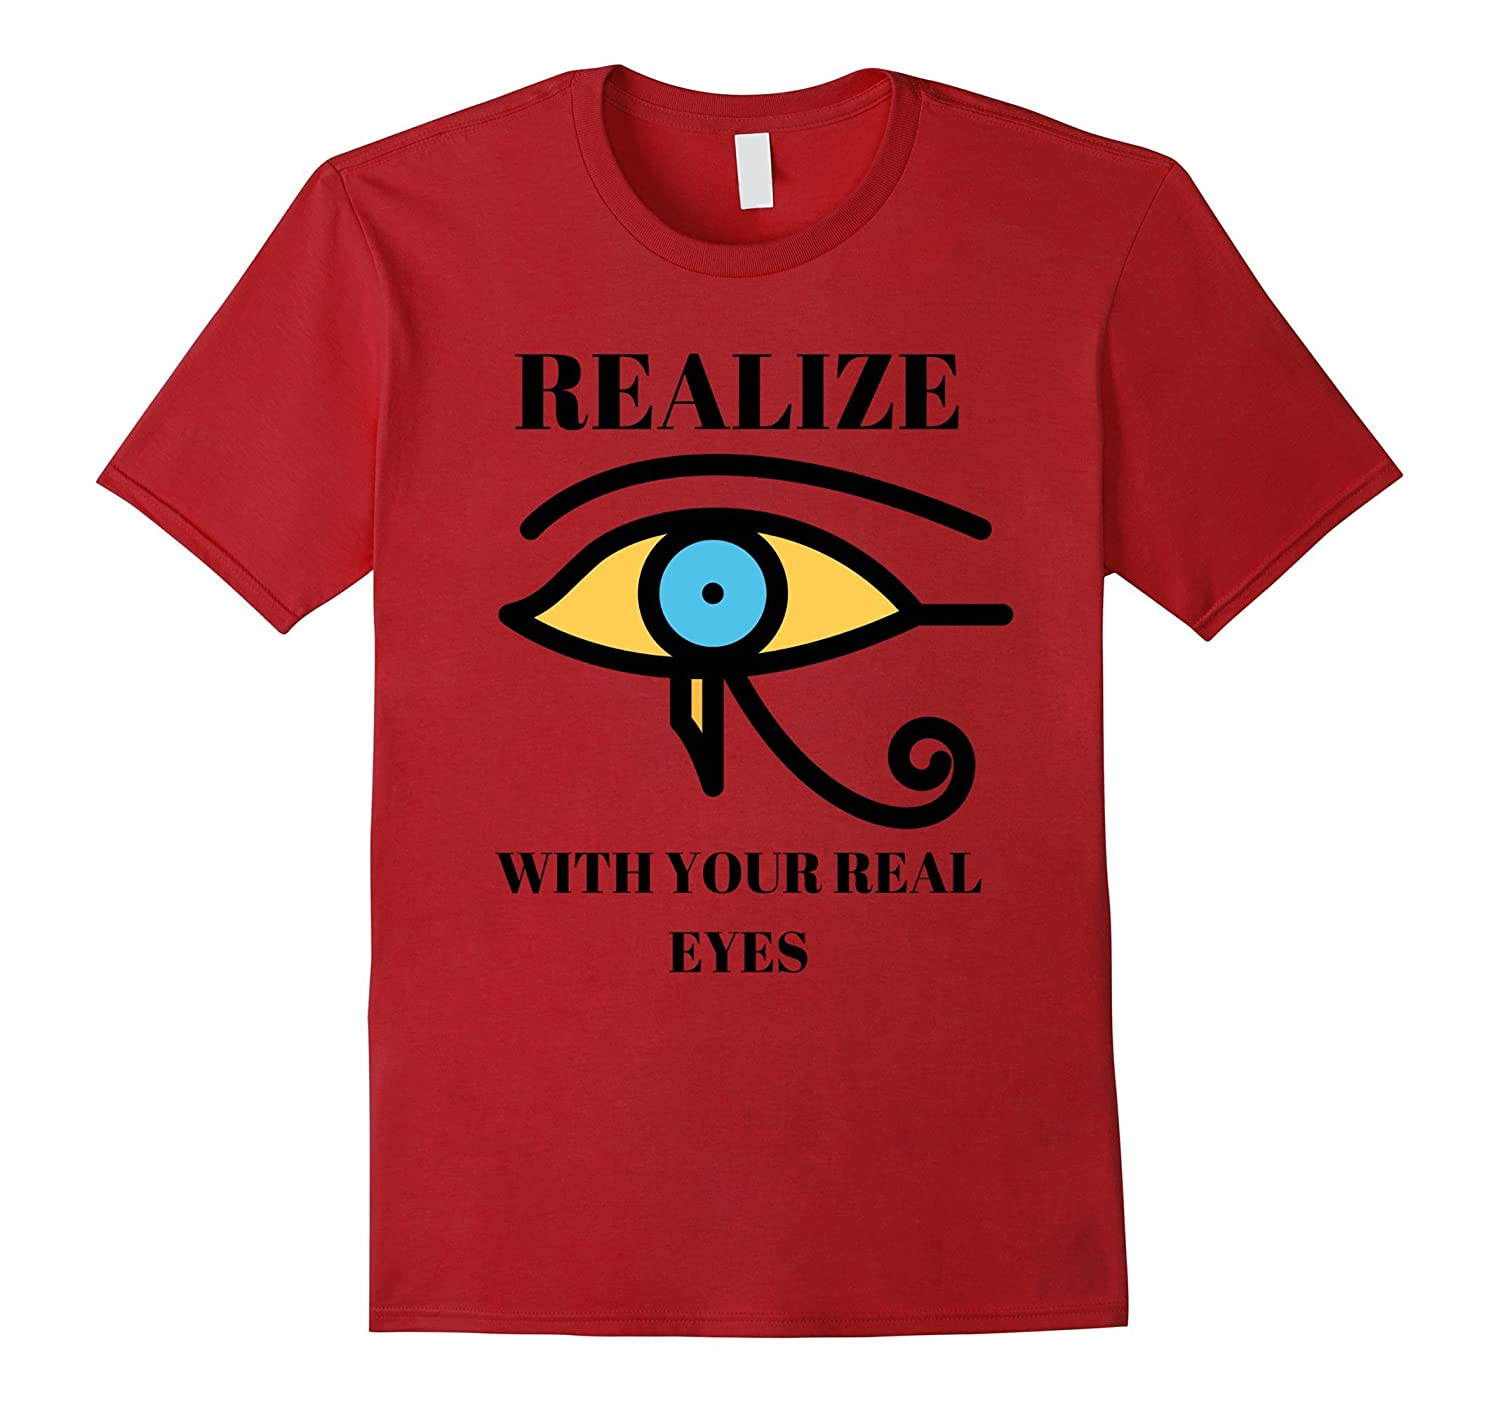 Realize with your real eyes-PL